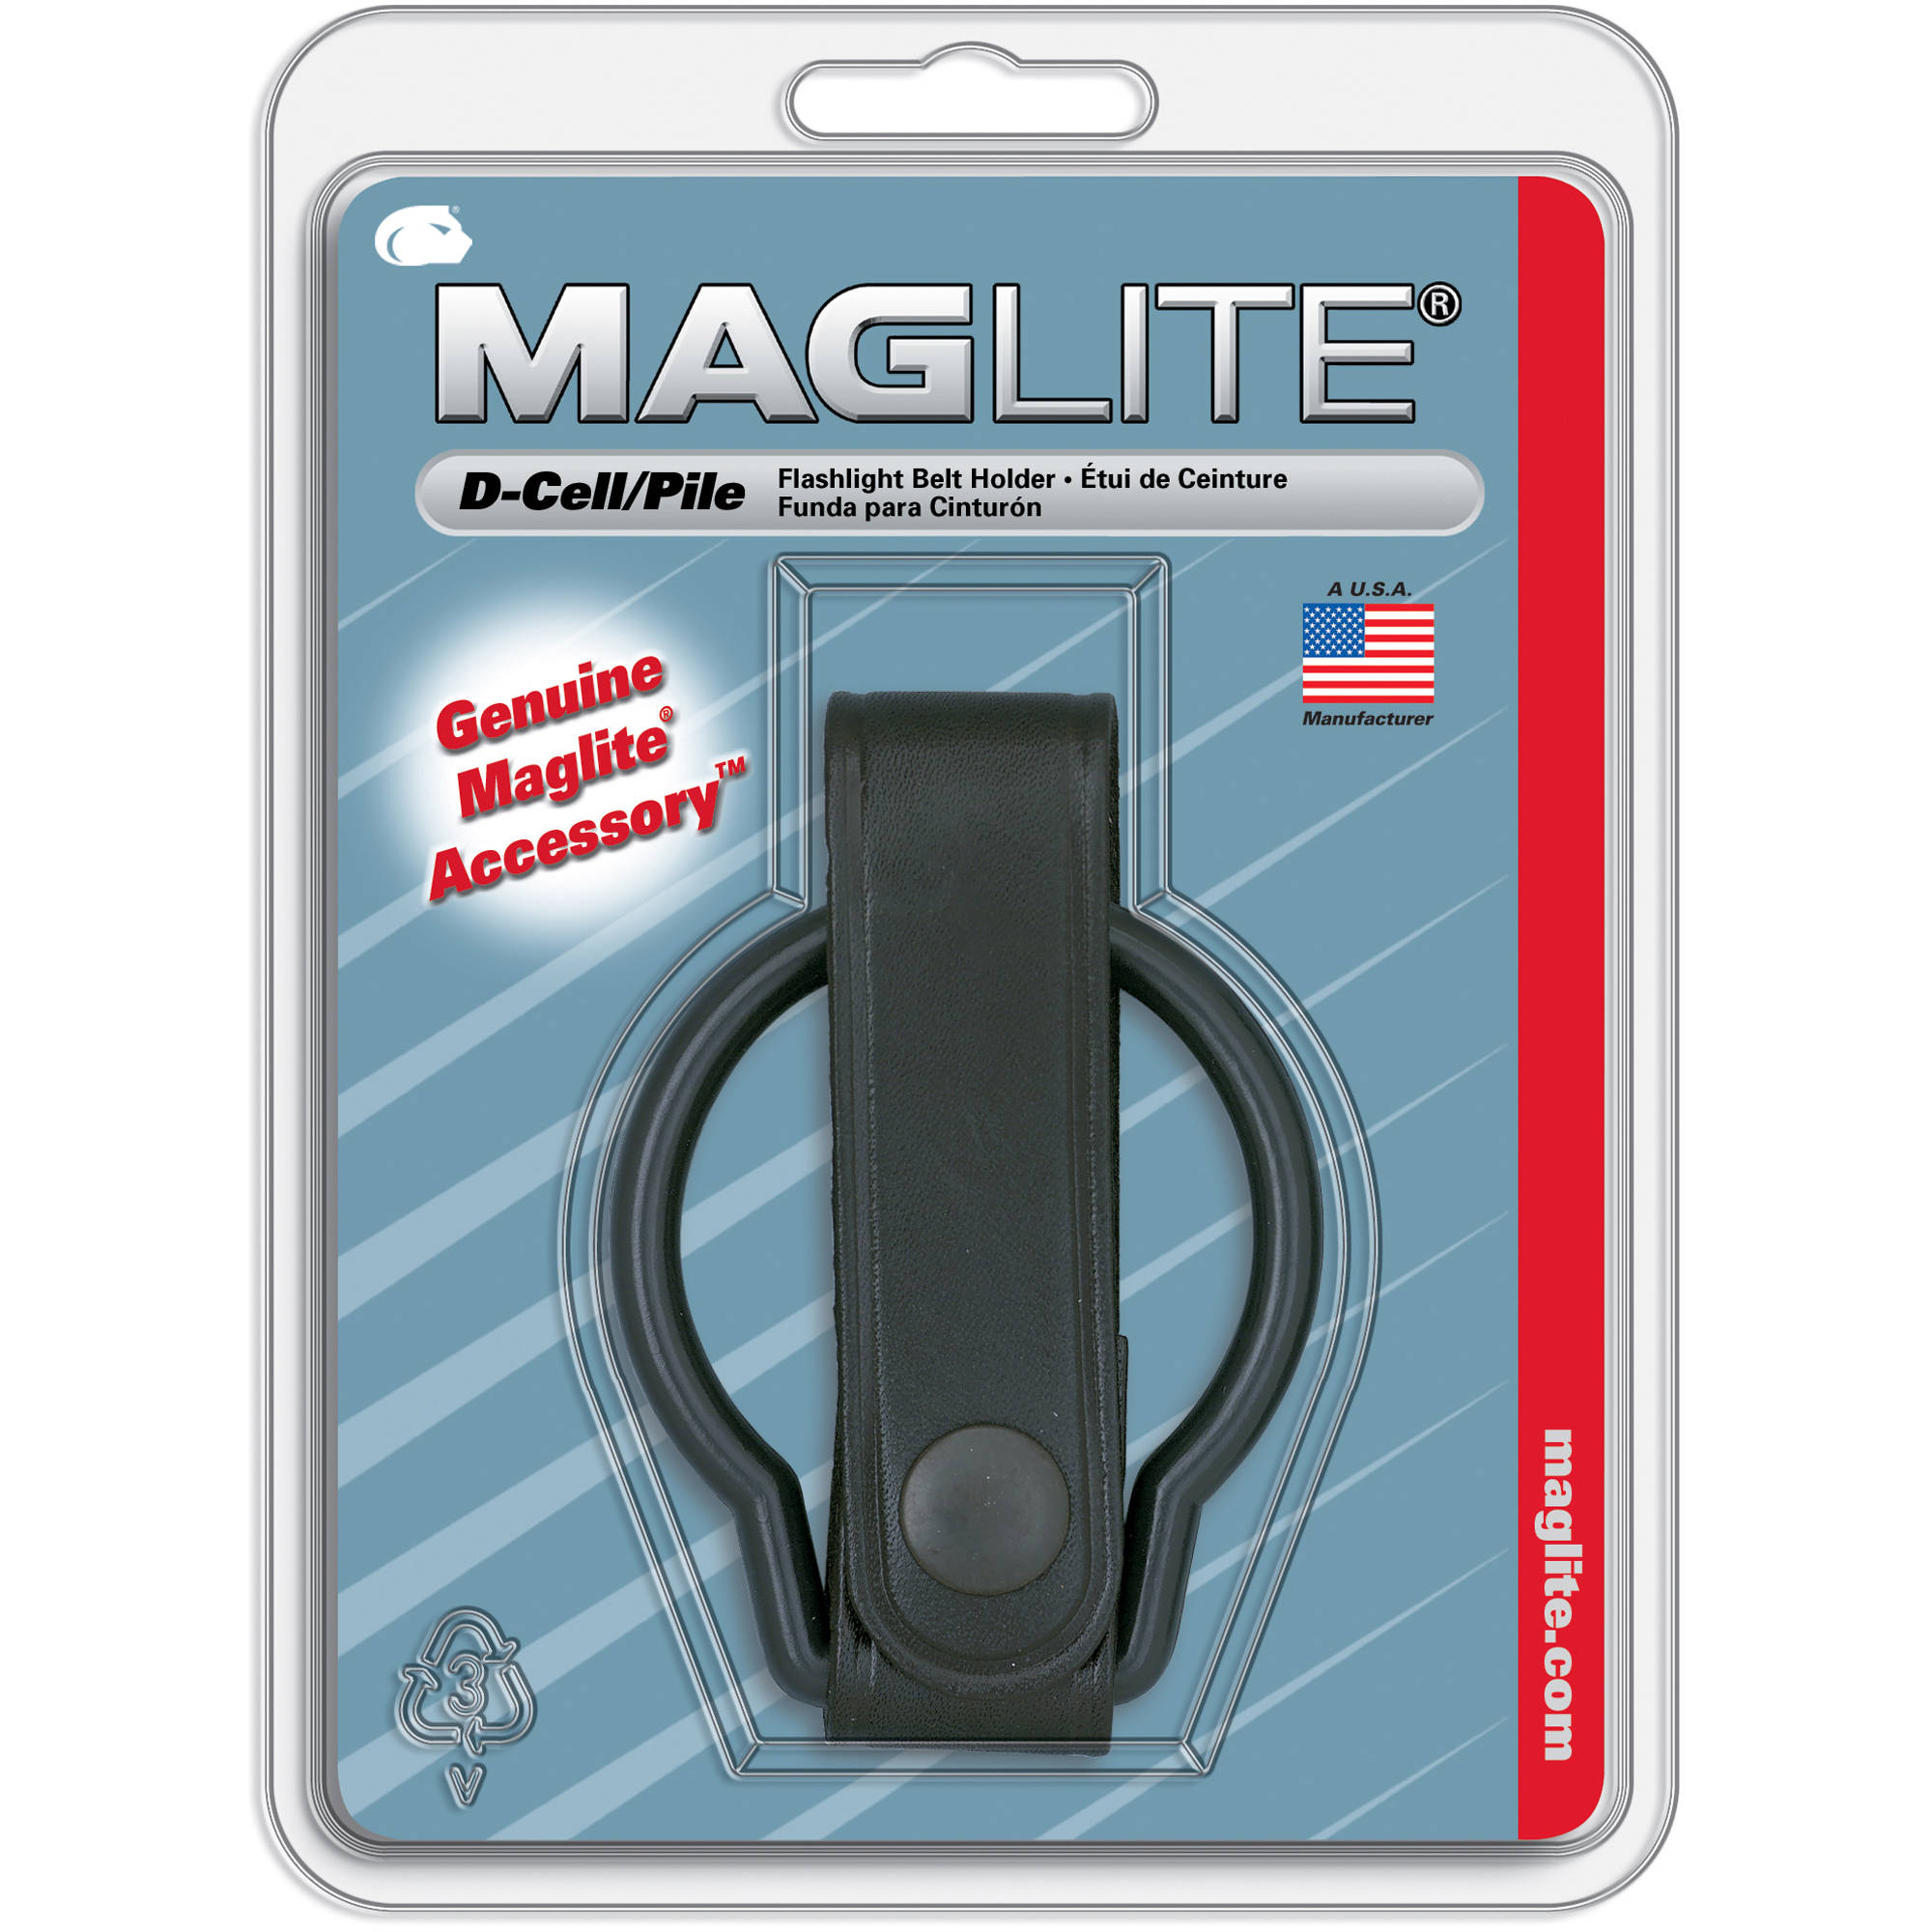 Mag Instrument Asxd026 Universal Mounting Brackets D Cell for sale online